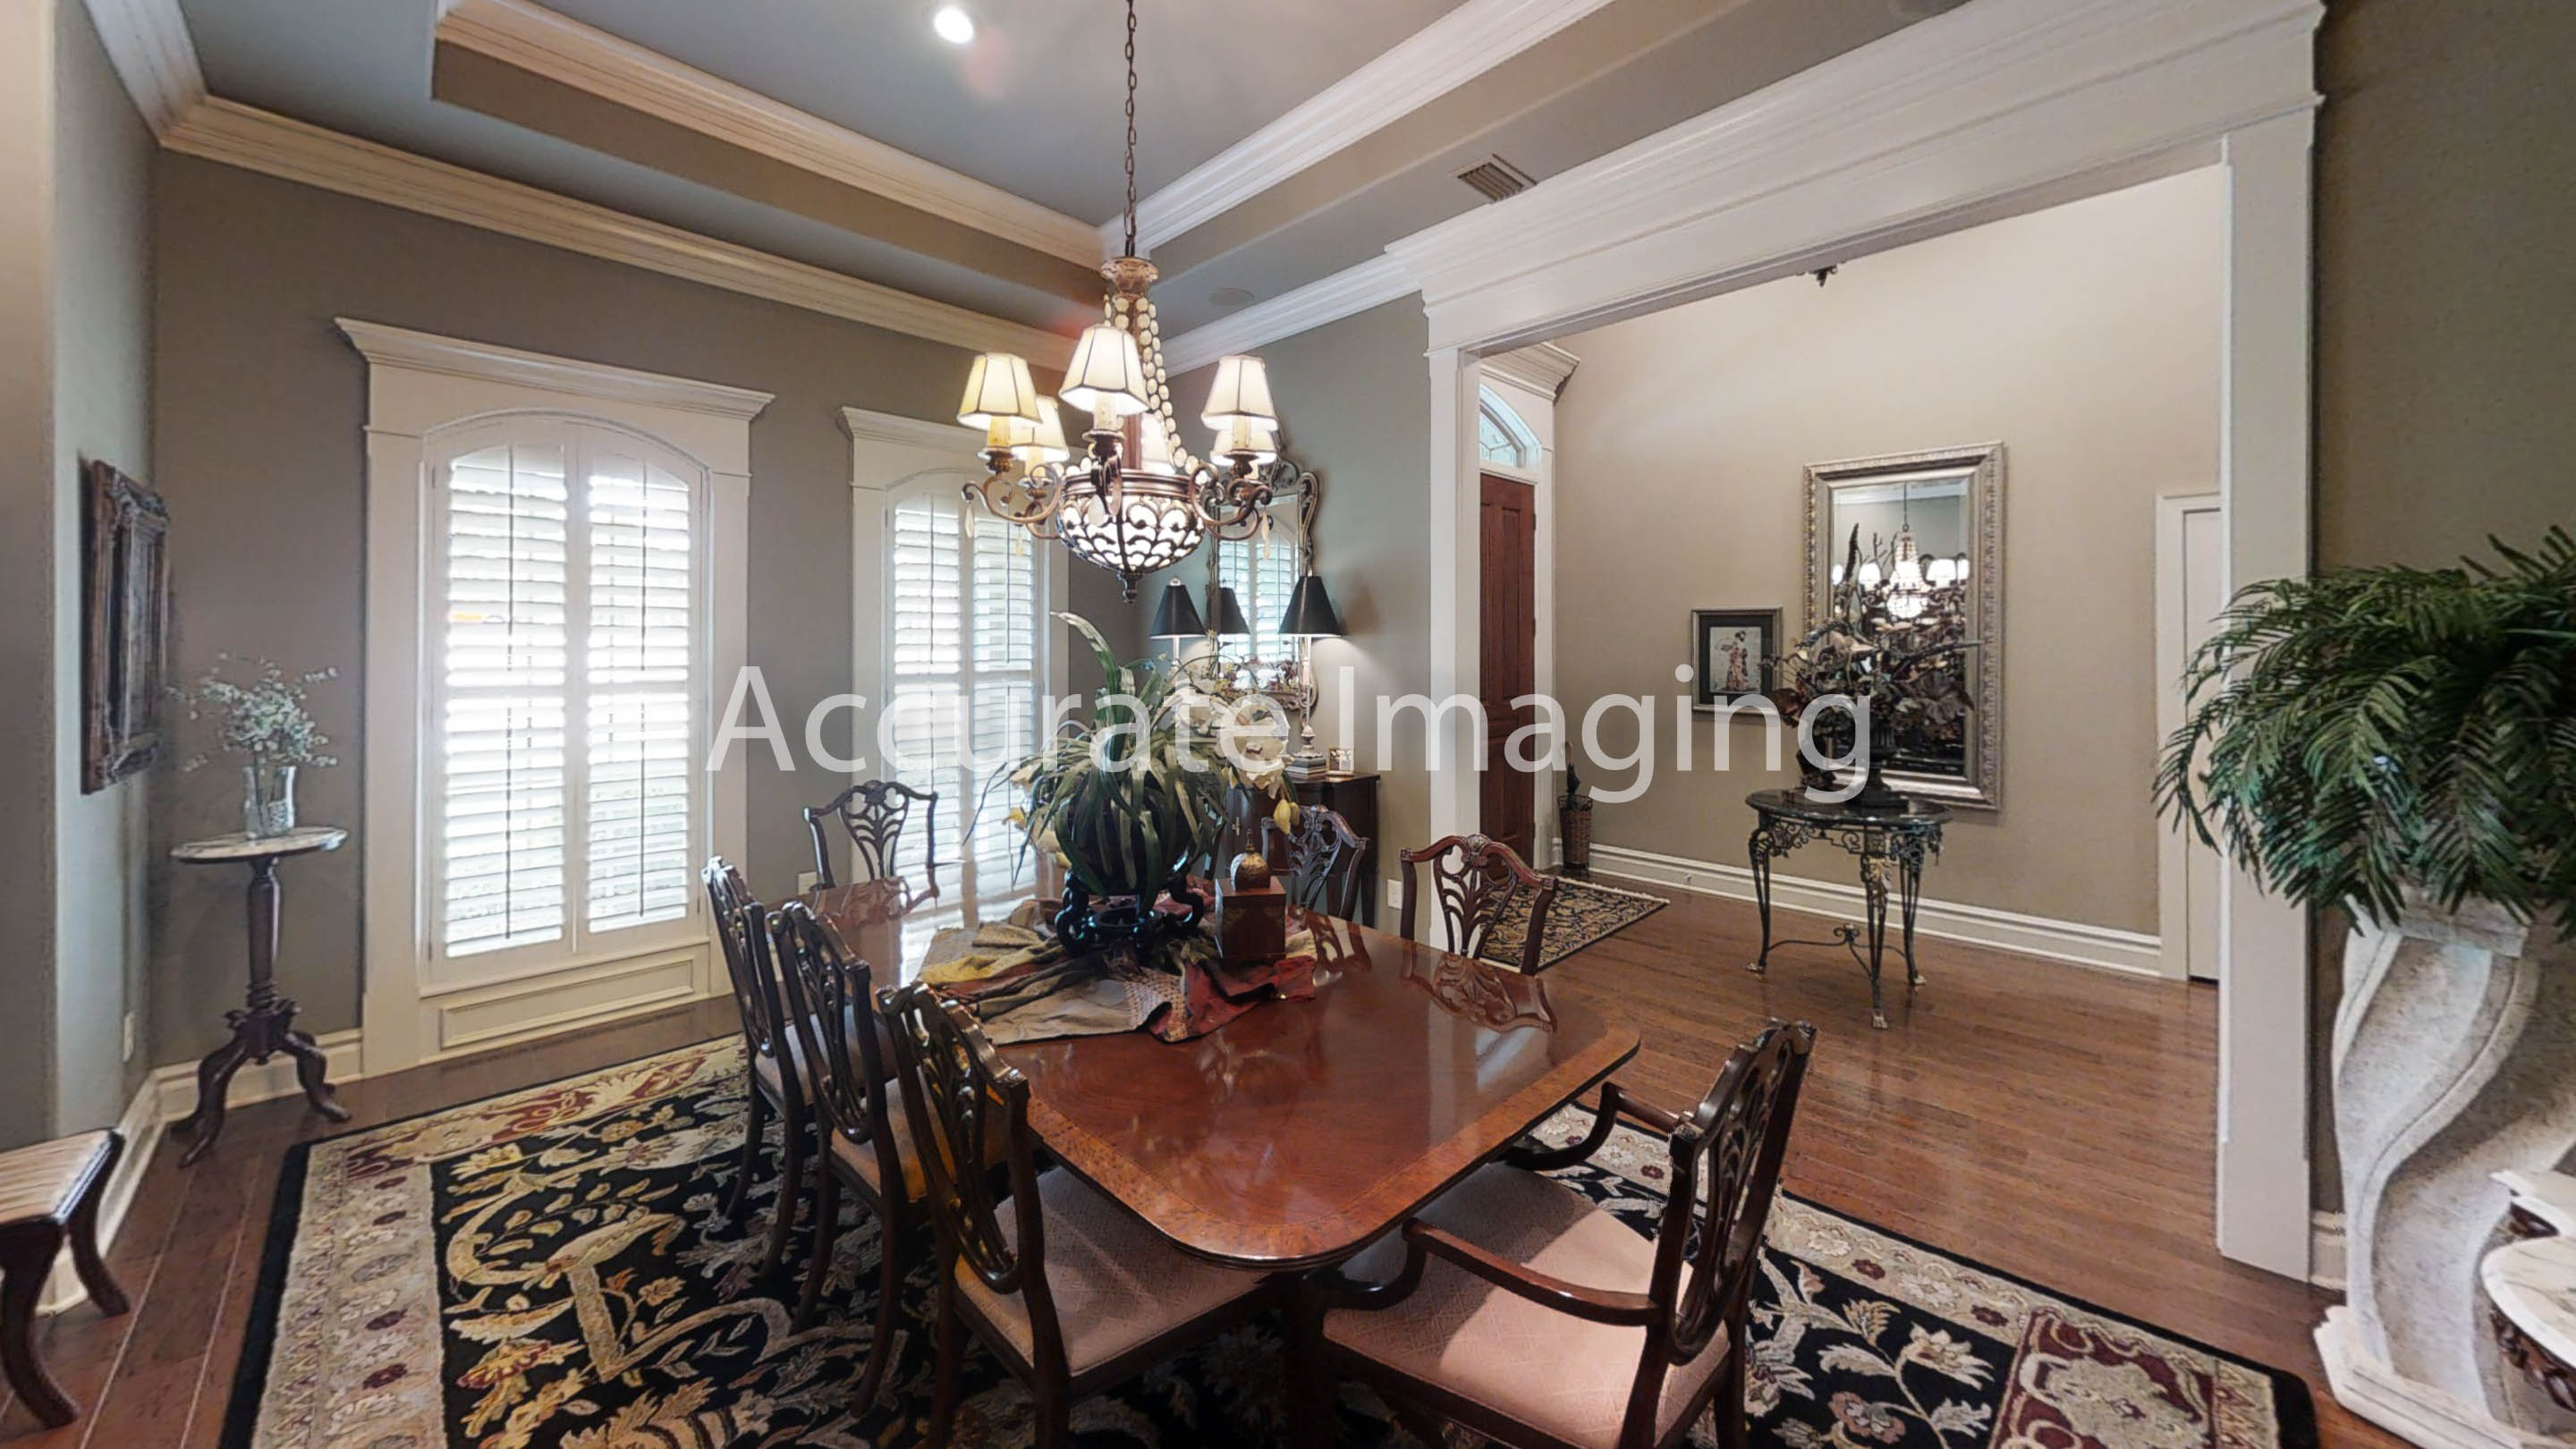 670-Huntington-Dining-Room(1)